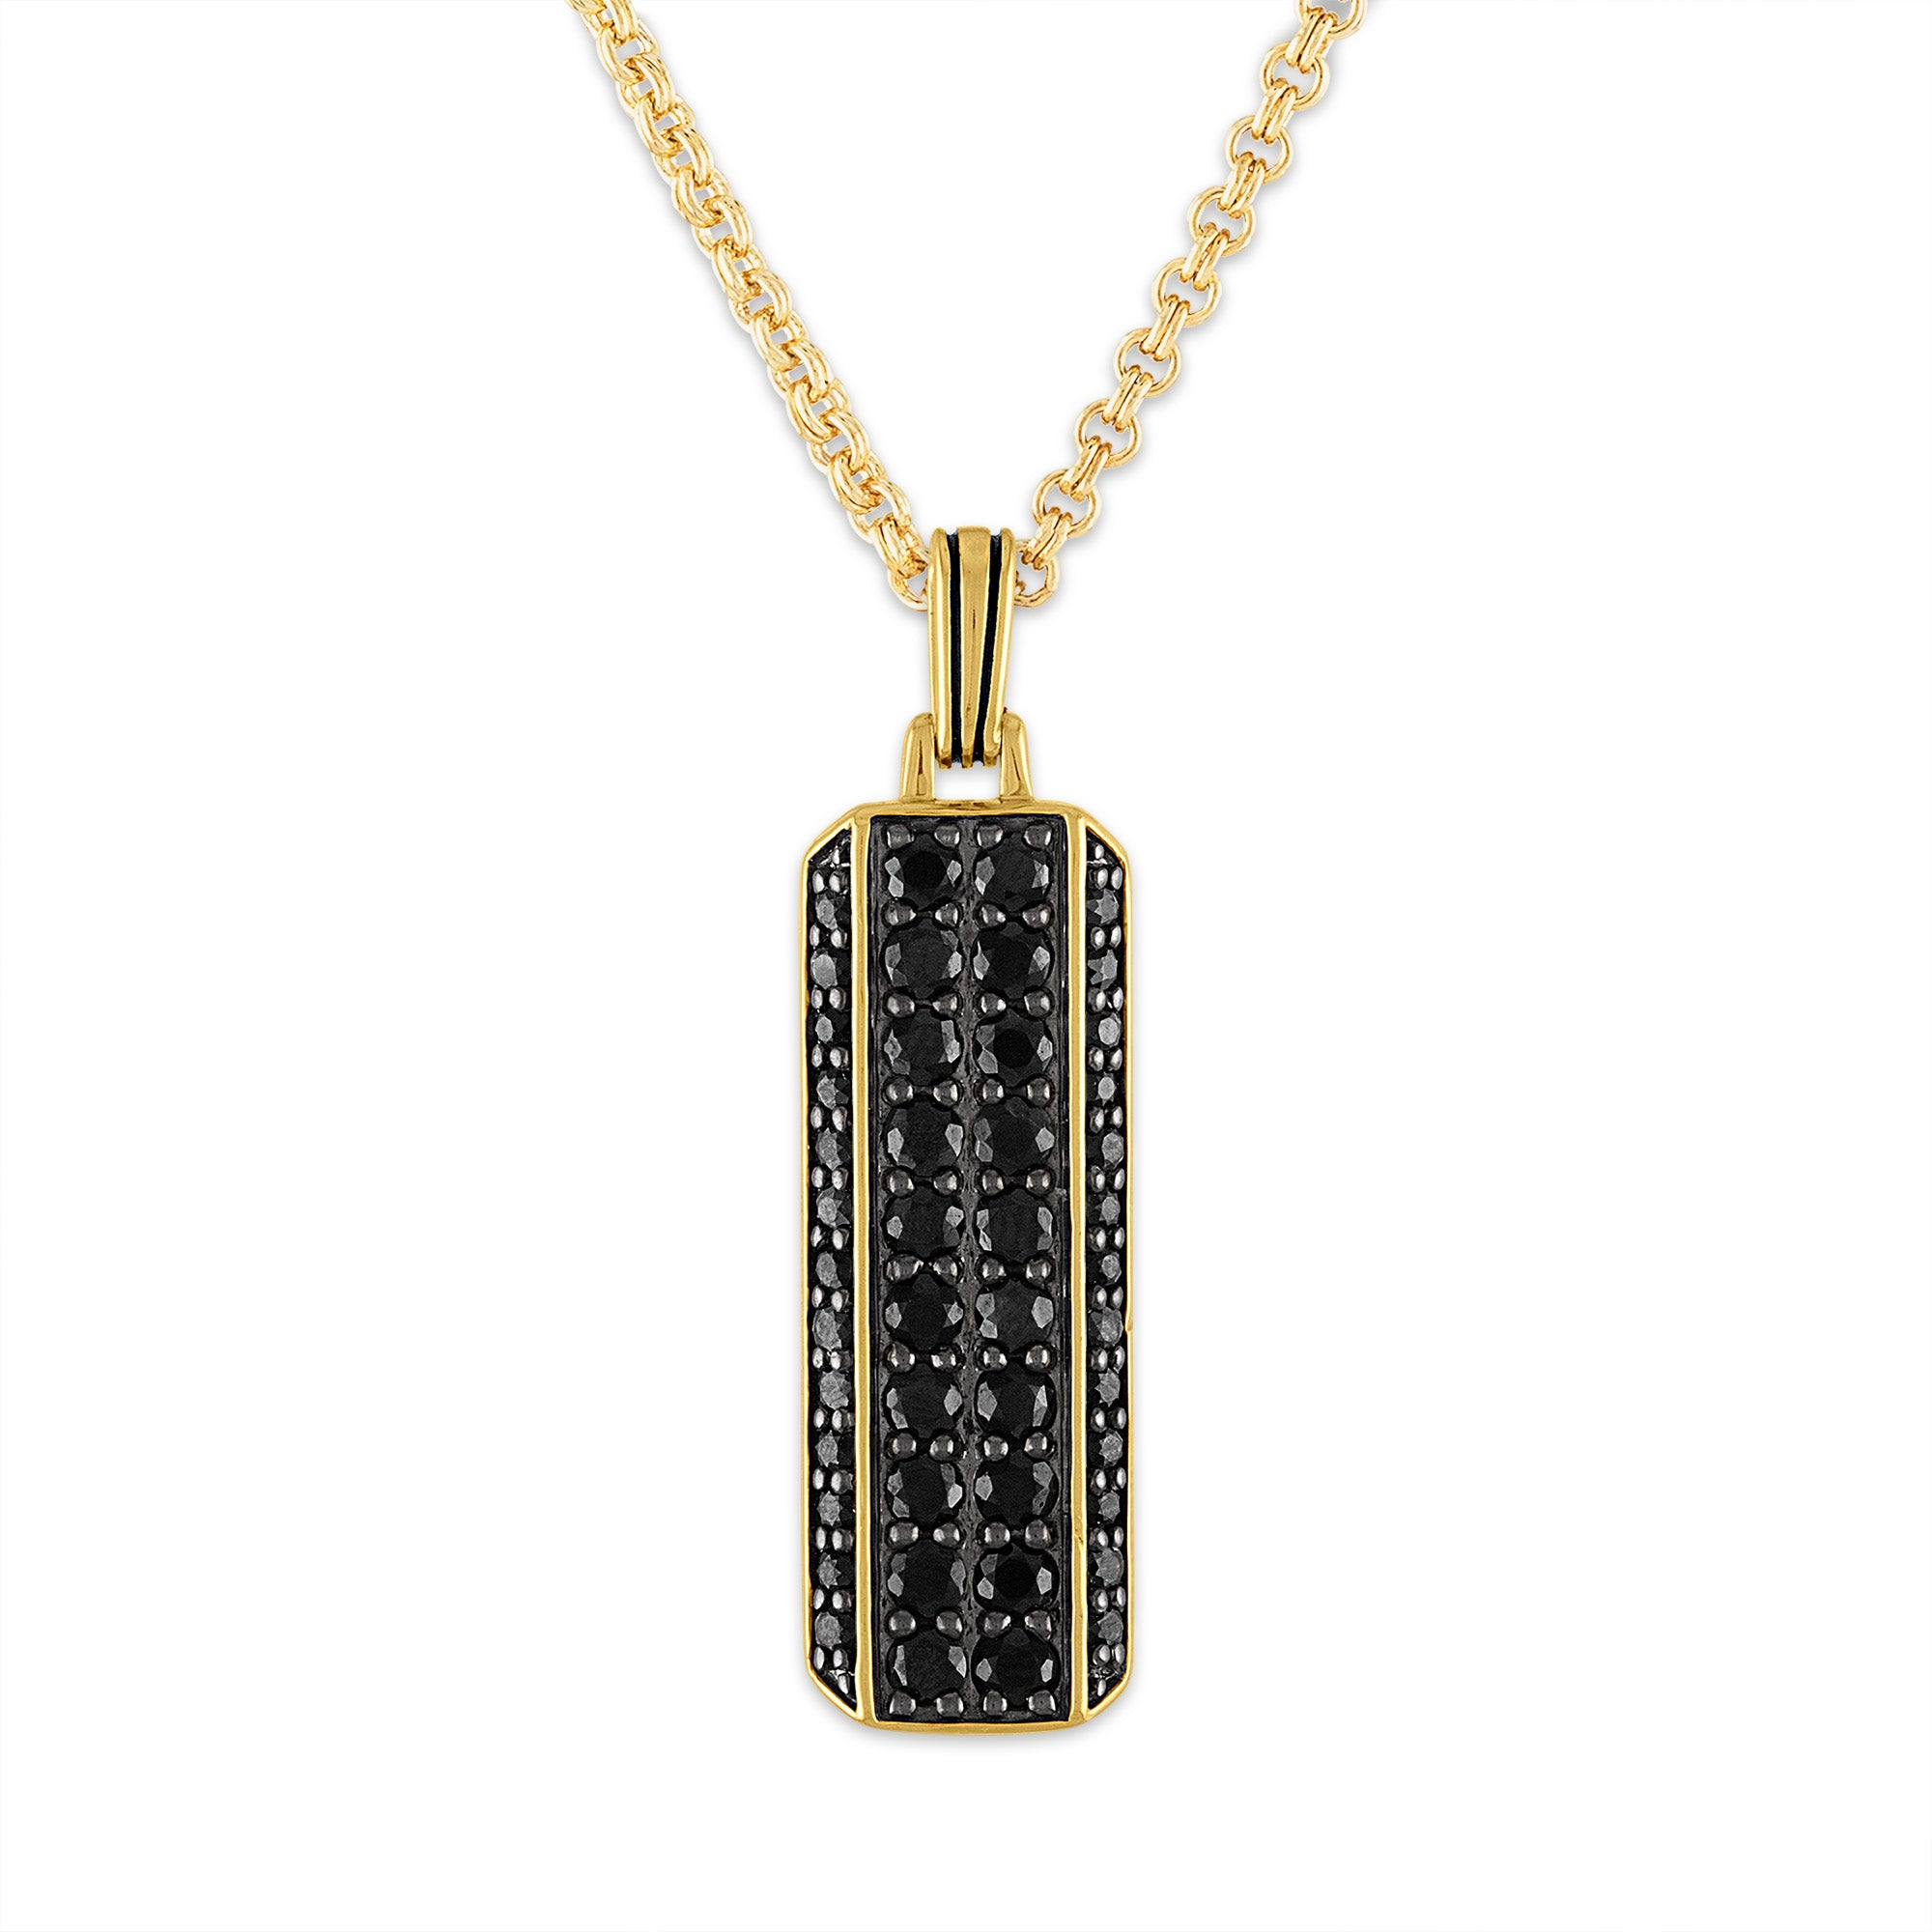 Esquire Men's Jewelry 14kt Gold over Sterling Silver 2 3/4 ct. t.w. Black Sapphire Pendant Necklace, 22""